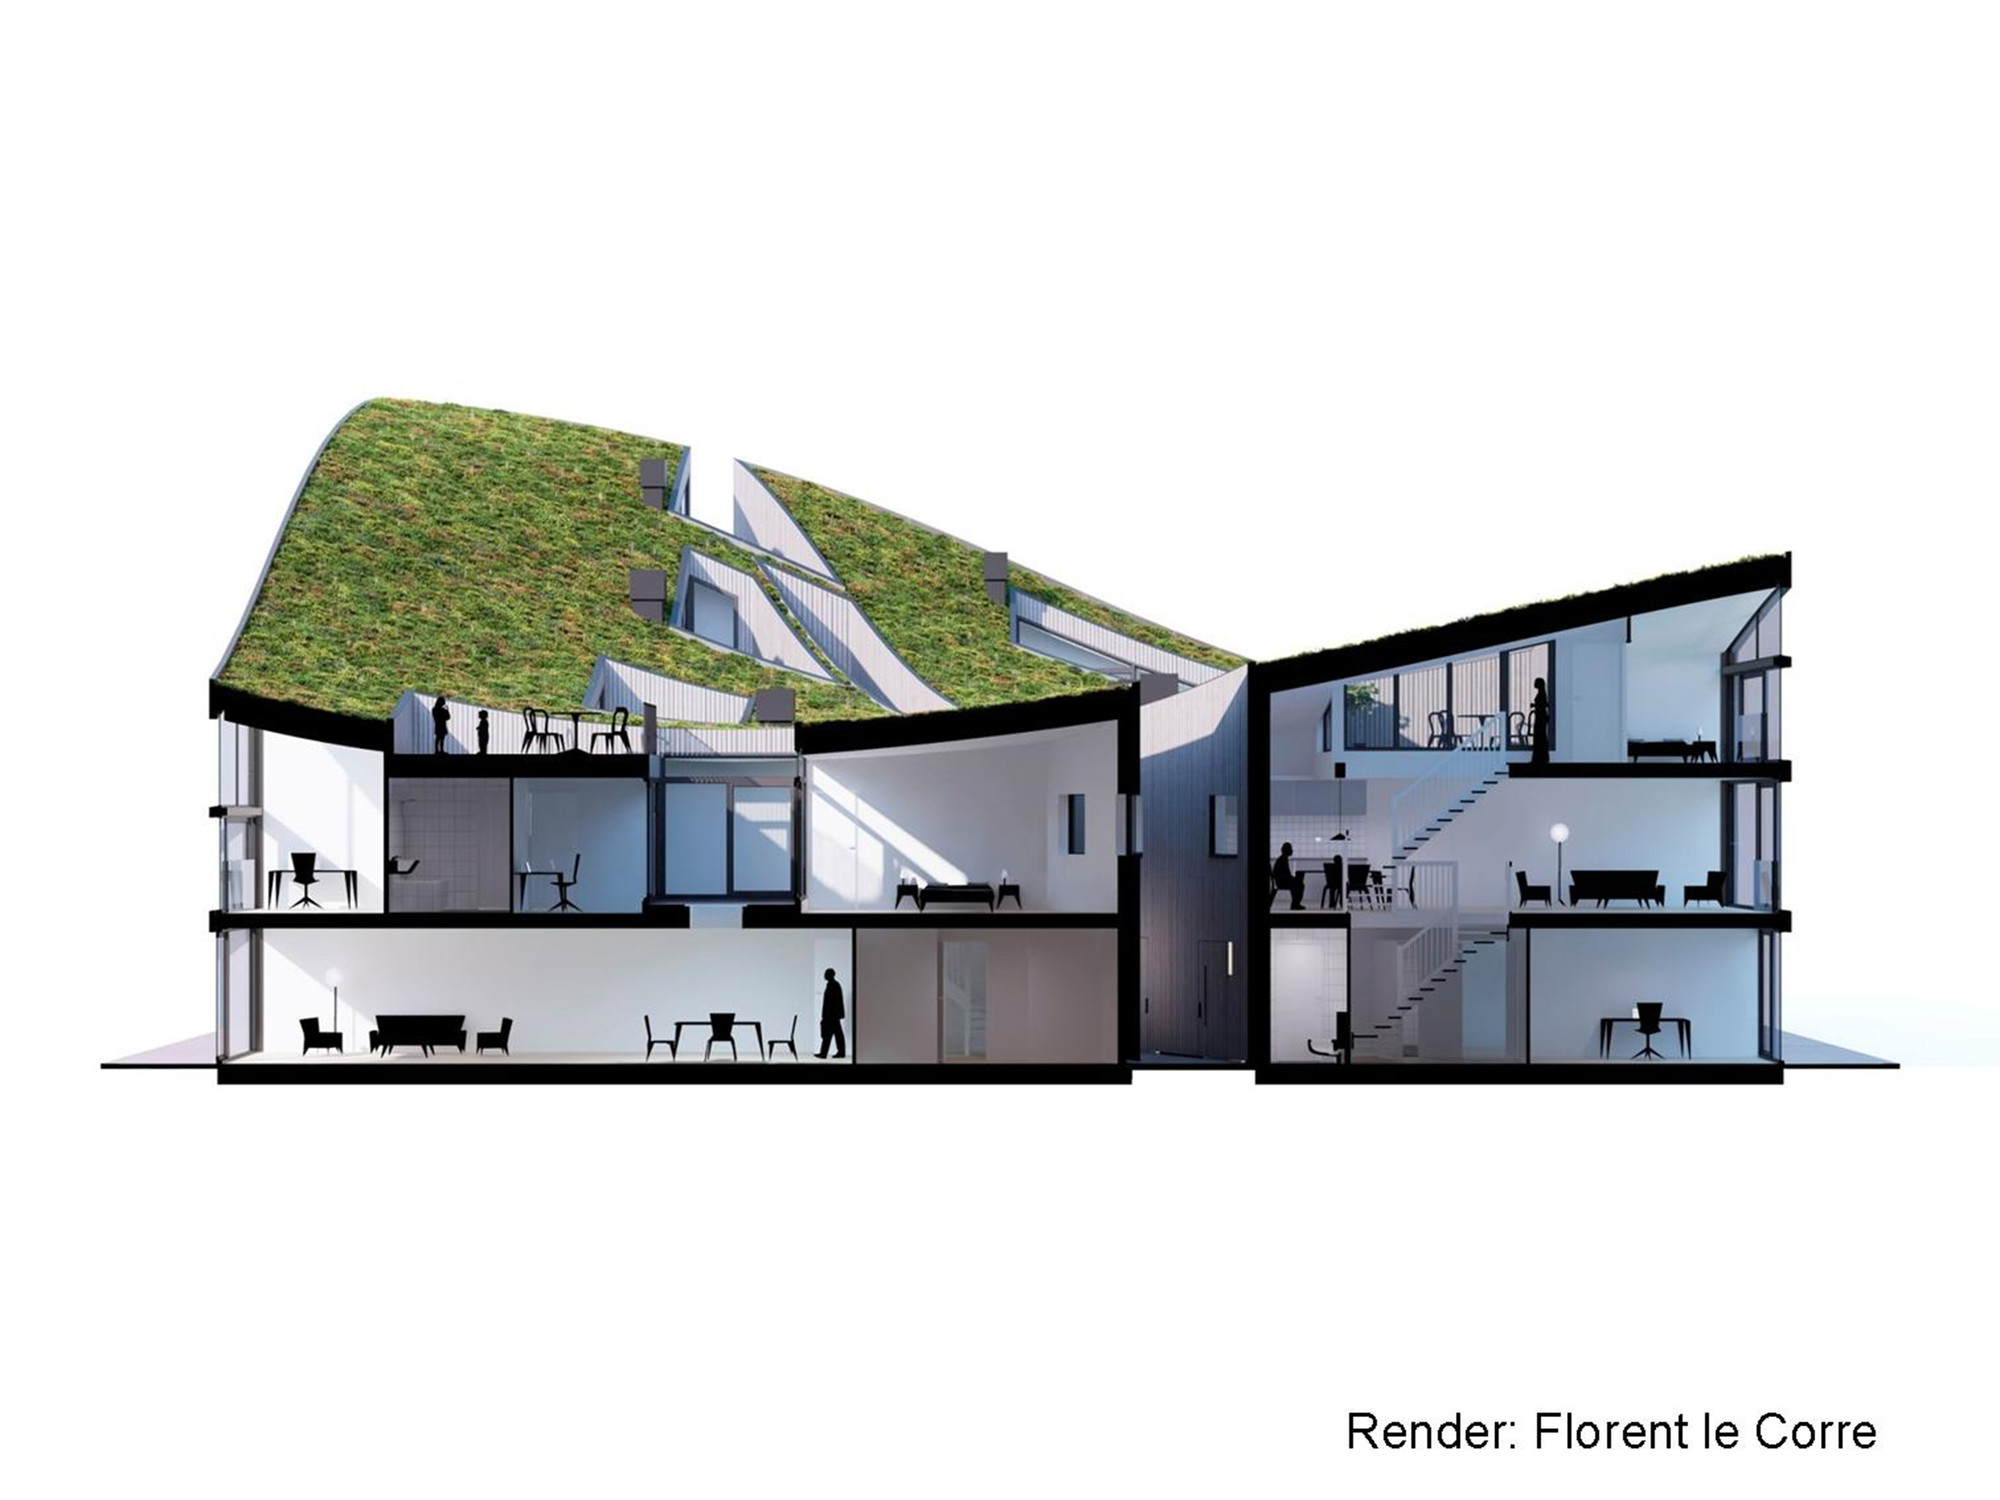 Tropical House Design together with 96683 Batten Board Siding Exterior Contemporary With Outdoor Lighting House Numbers further Nextgenlivinghomes further Darwin additionally Exterior Colors For French Home Design. on modern tropical house plans